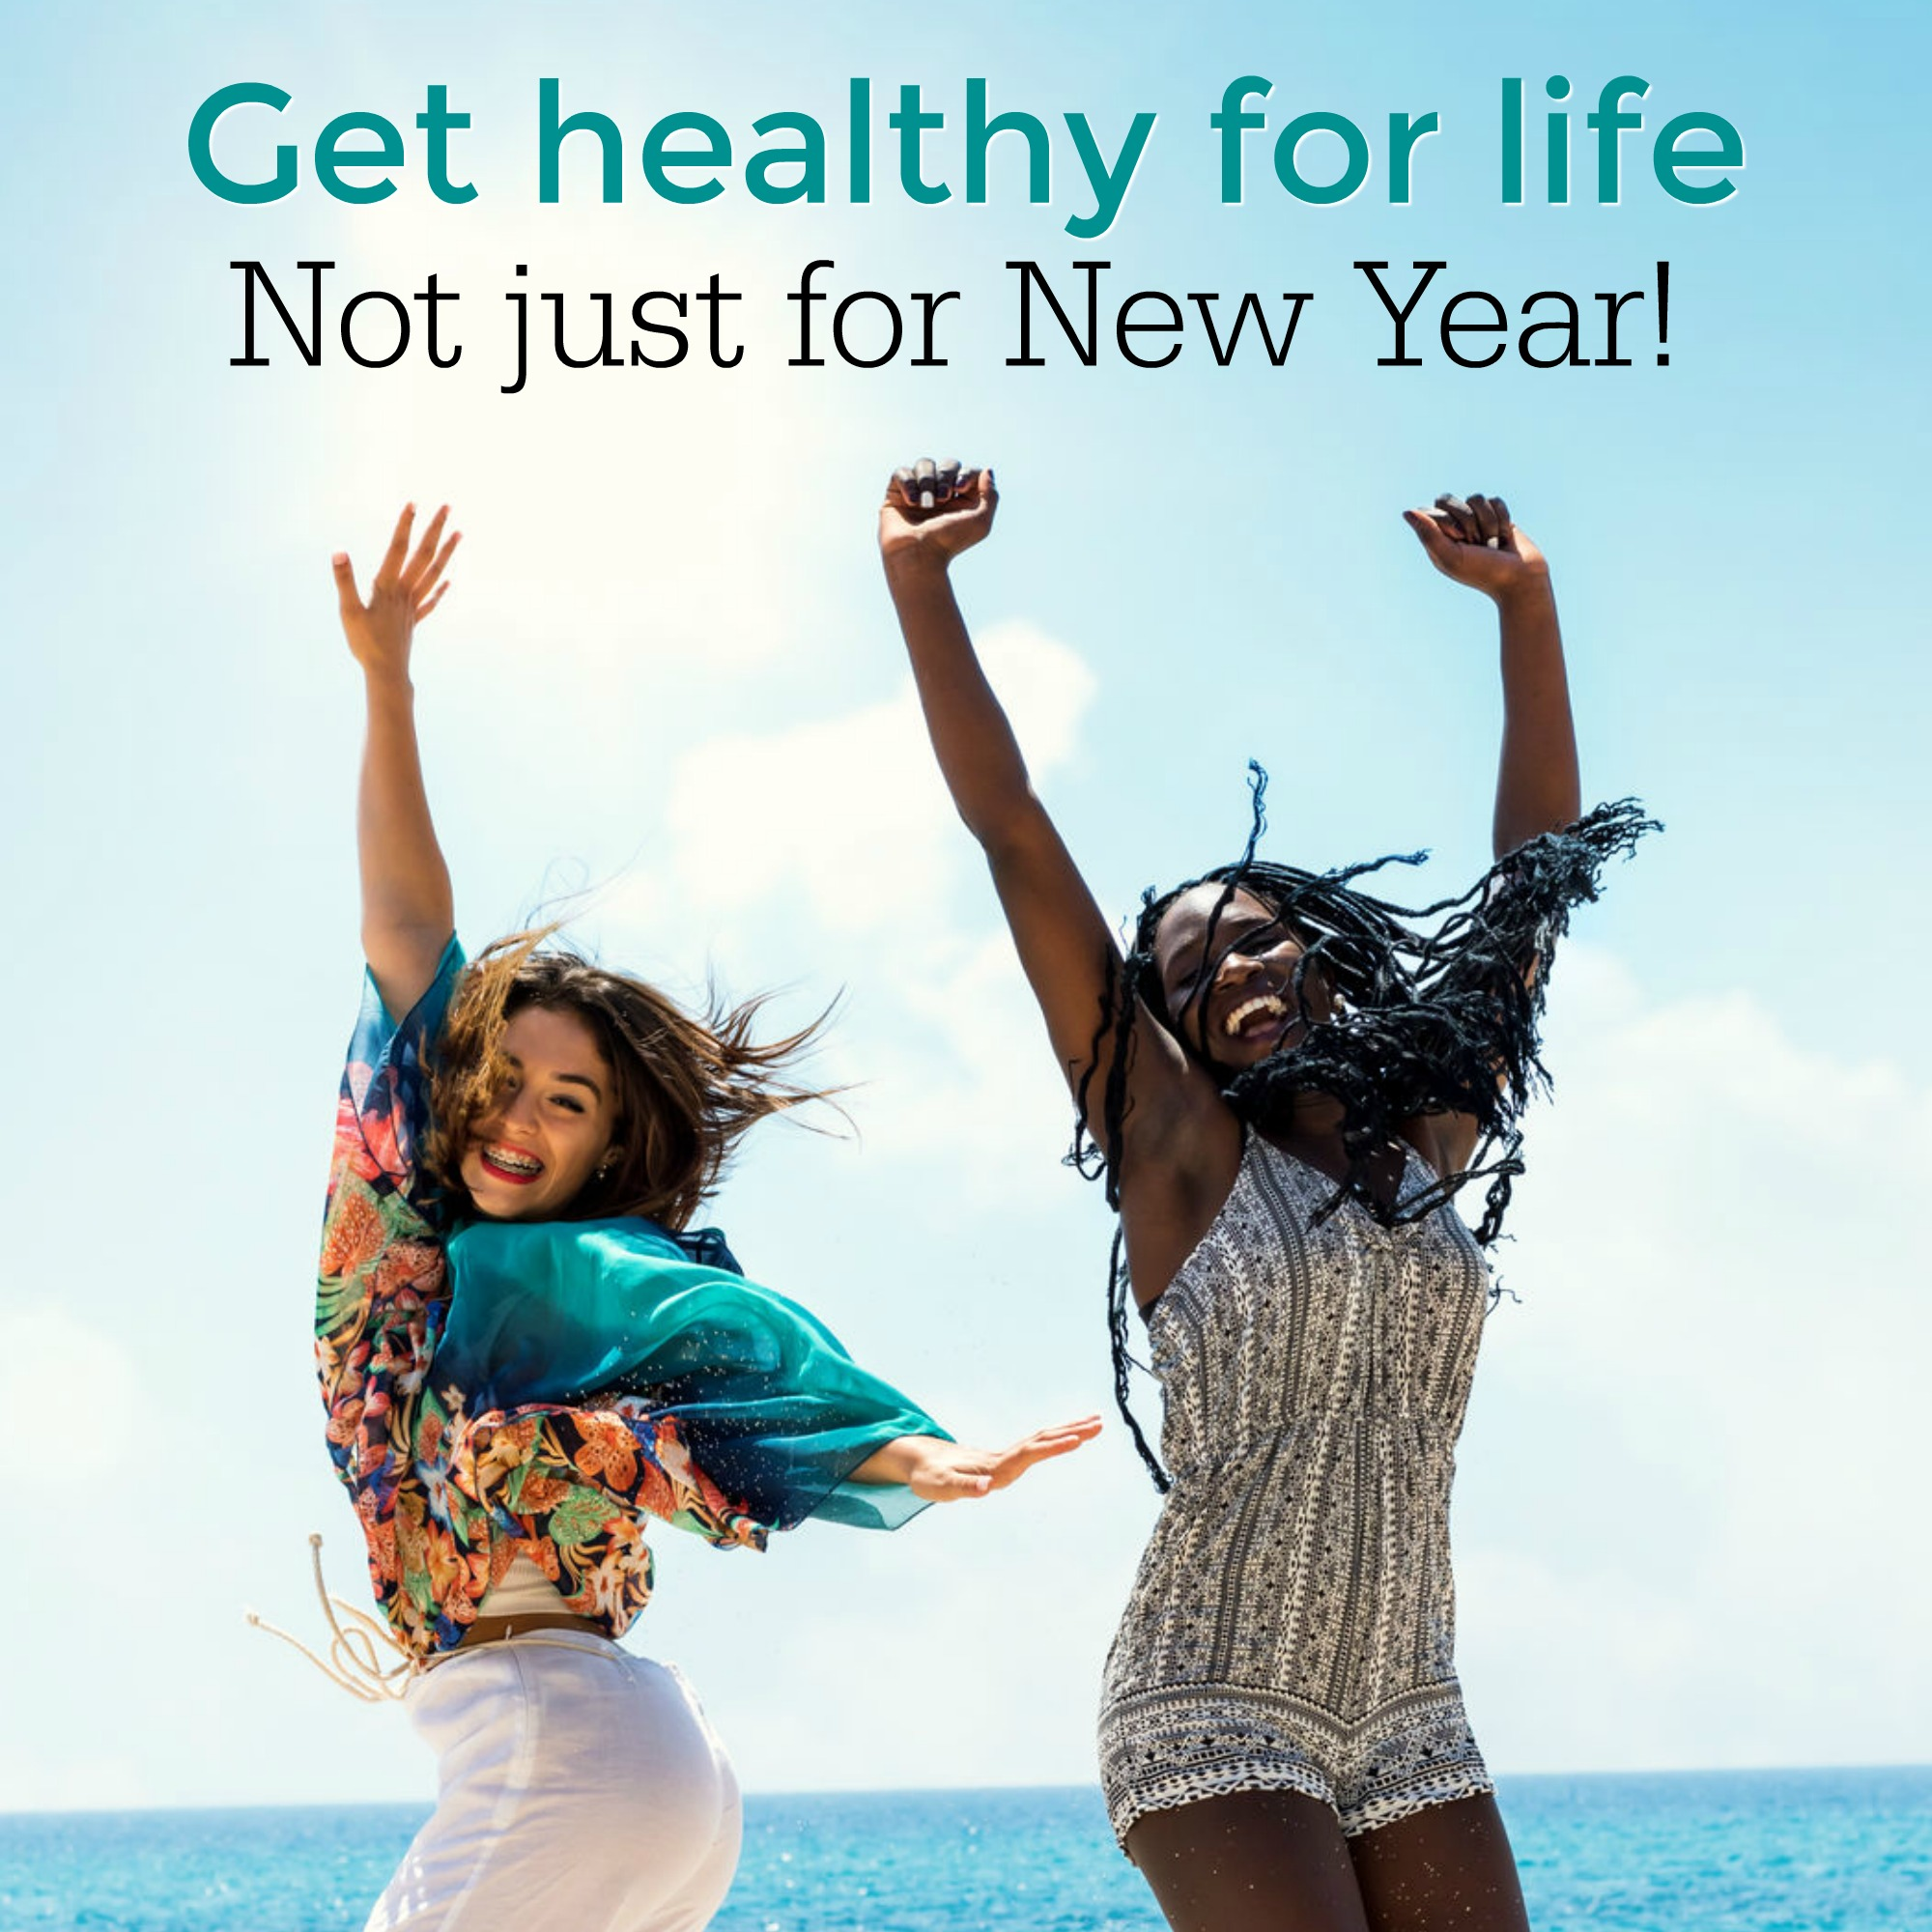 Let's make 2017 the year to be Healthy....All Year Long!